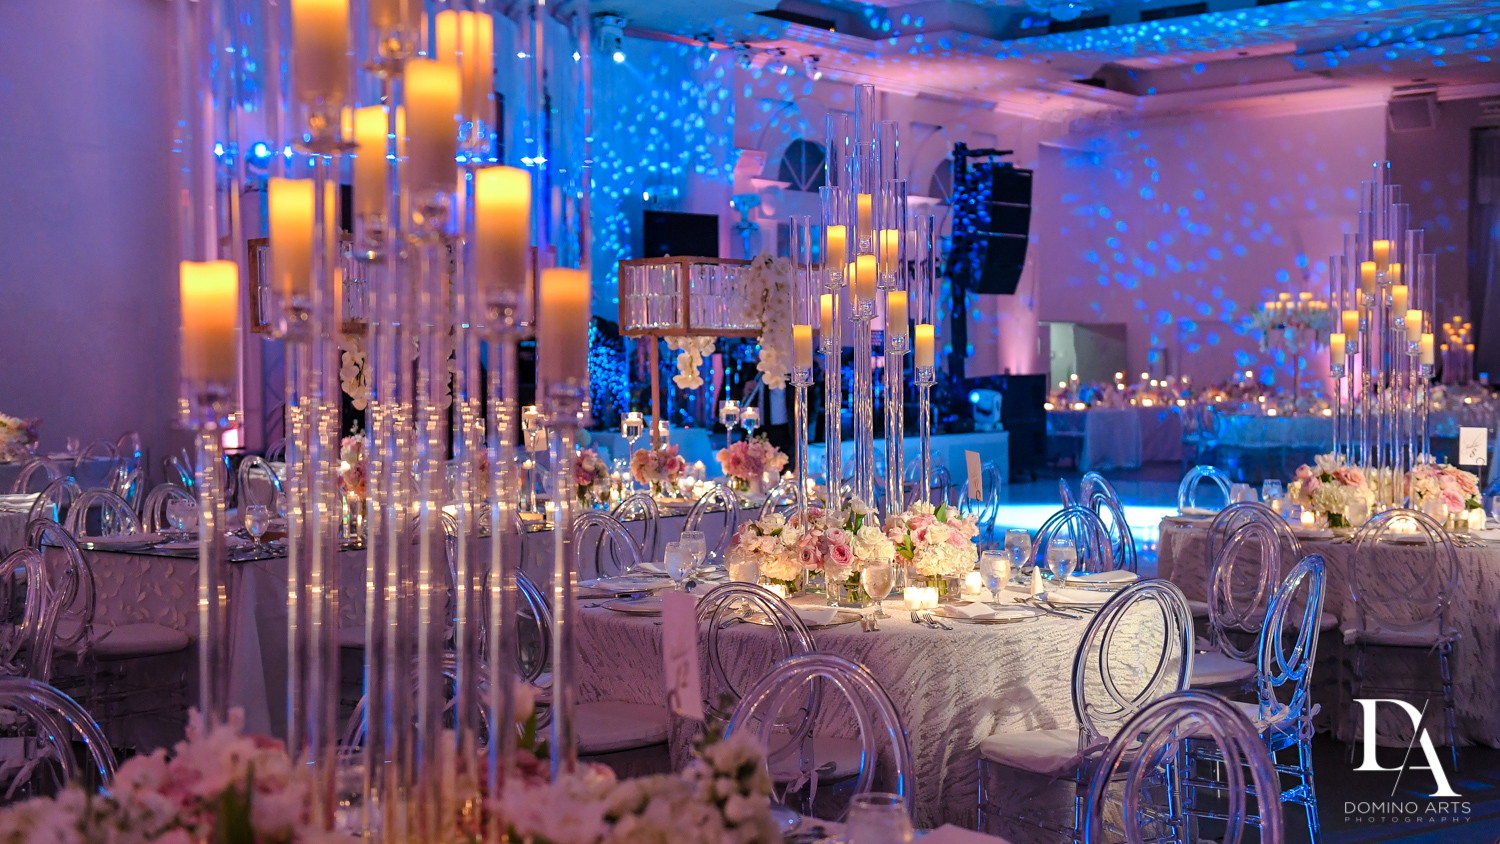 candelabra at Lavish Flowers & Crystals Wedding at Aventura Turnberry Jewish Center by Domino Arts Photography